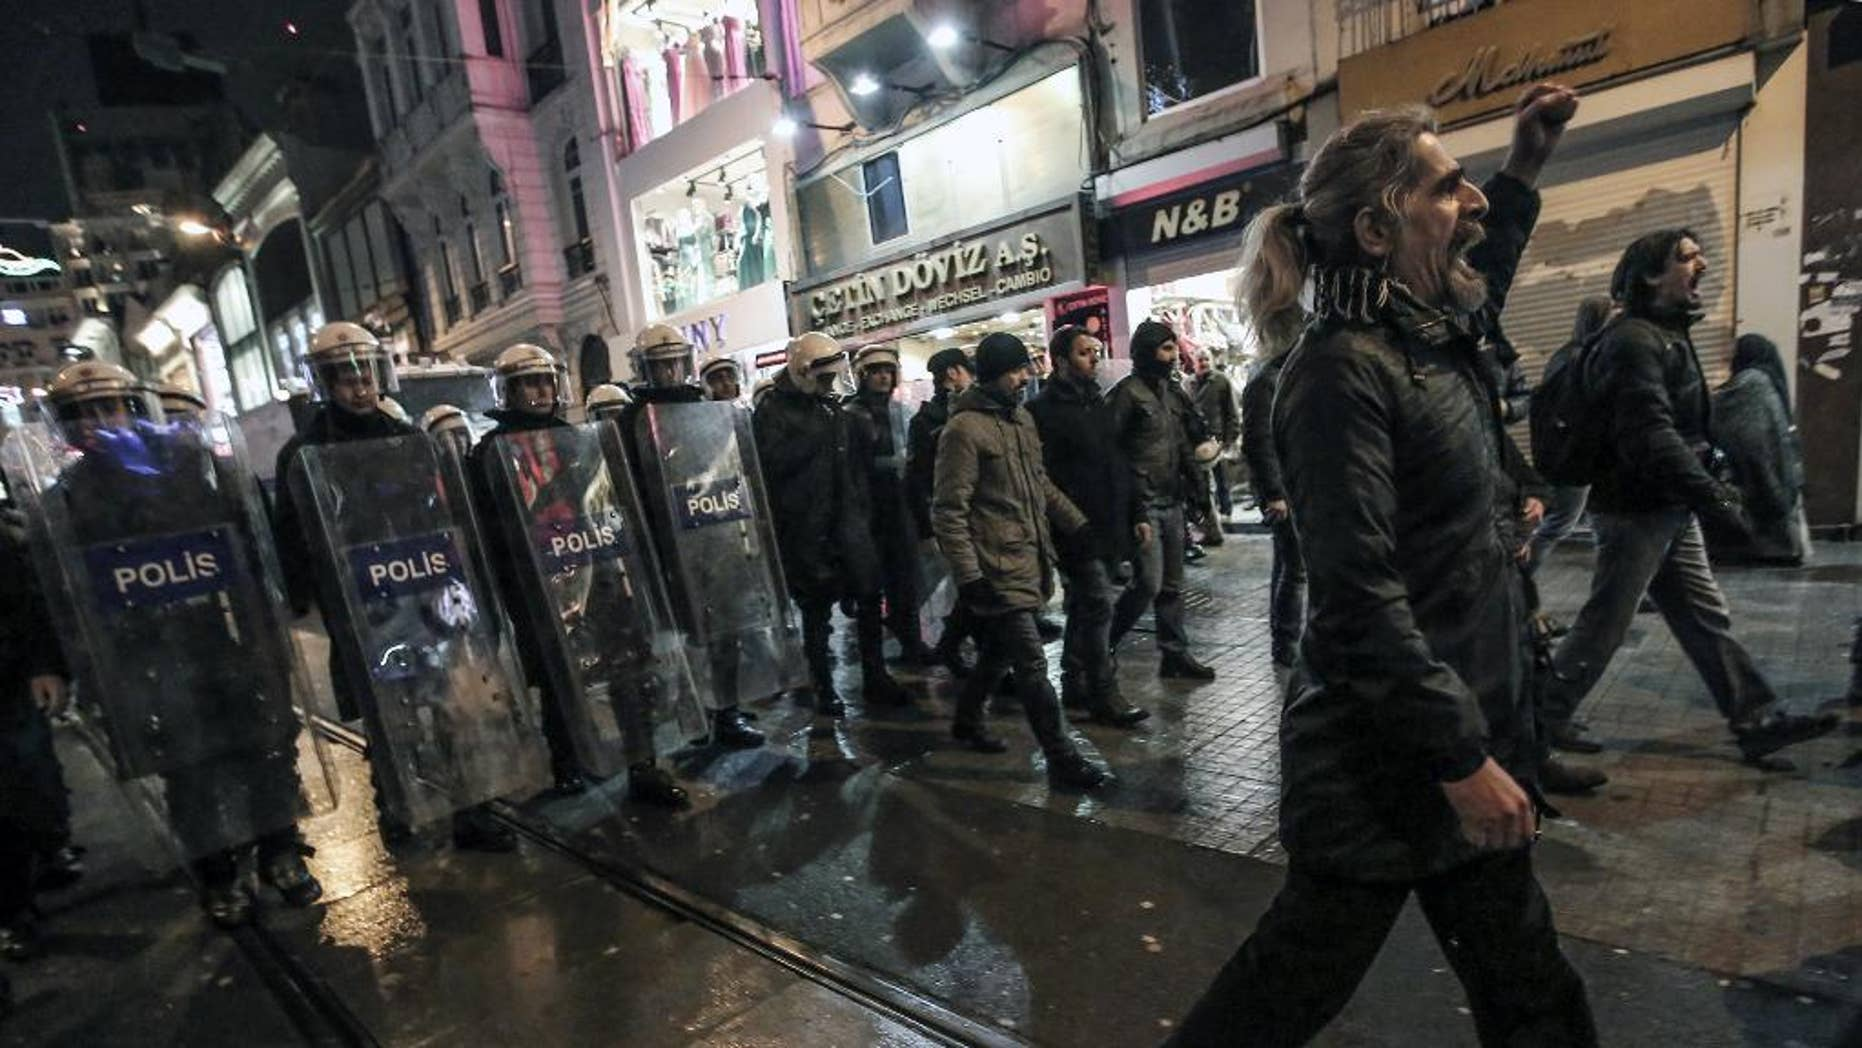 People protest the death of Berkin Elvan, a Turkish teenager who was in a coma since being hit in the head by a tear gas canister fired by police during the summer's anti-government protests, in Istanbul, Turkey, Tuesday, March 11, 2014. The 15-year old Berkin Elvan's death in an Istanbul hospital _ nine months after he fell into a coma _ looked likely to spark new protests in Turkey. Riot police fired tear gas, water cannon and rubber bullets to disperse anti-government protesters trying to converge in central Ankara and Istanbul hours after Berkin Elvan's family announced his death.(AP Photo/Emrah Gurel)